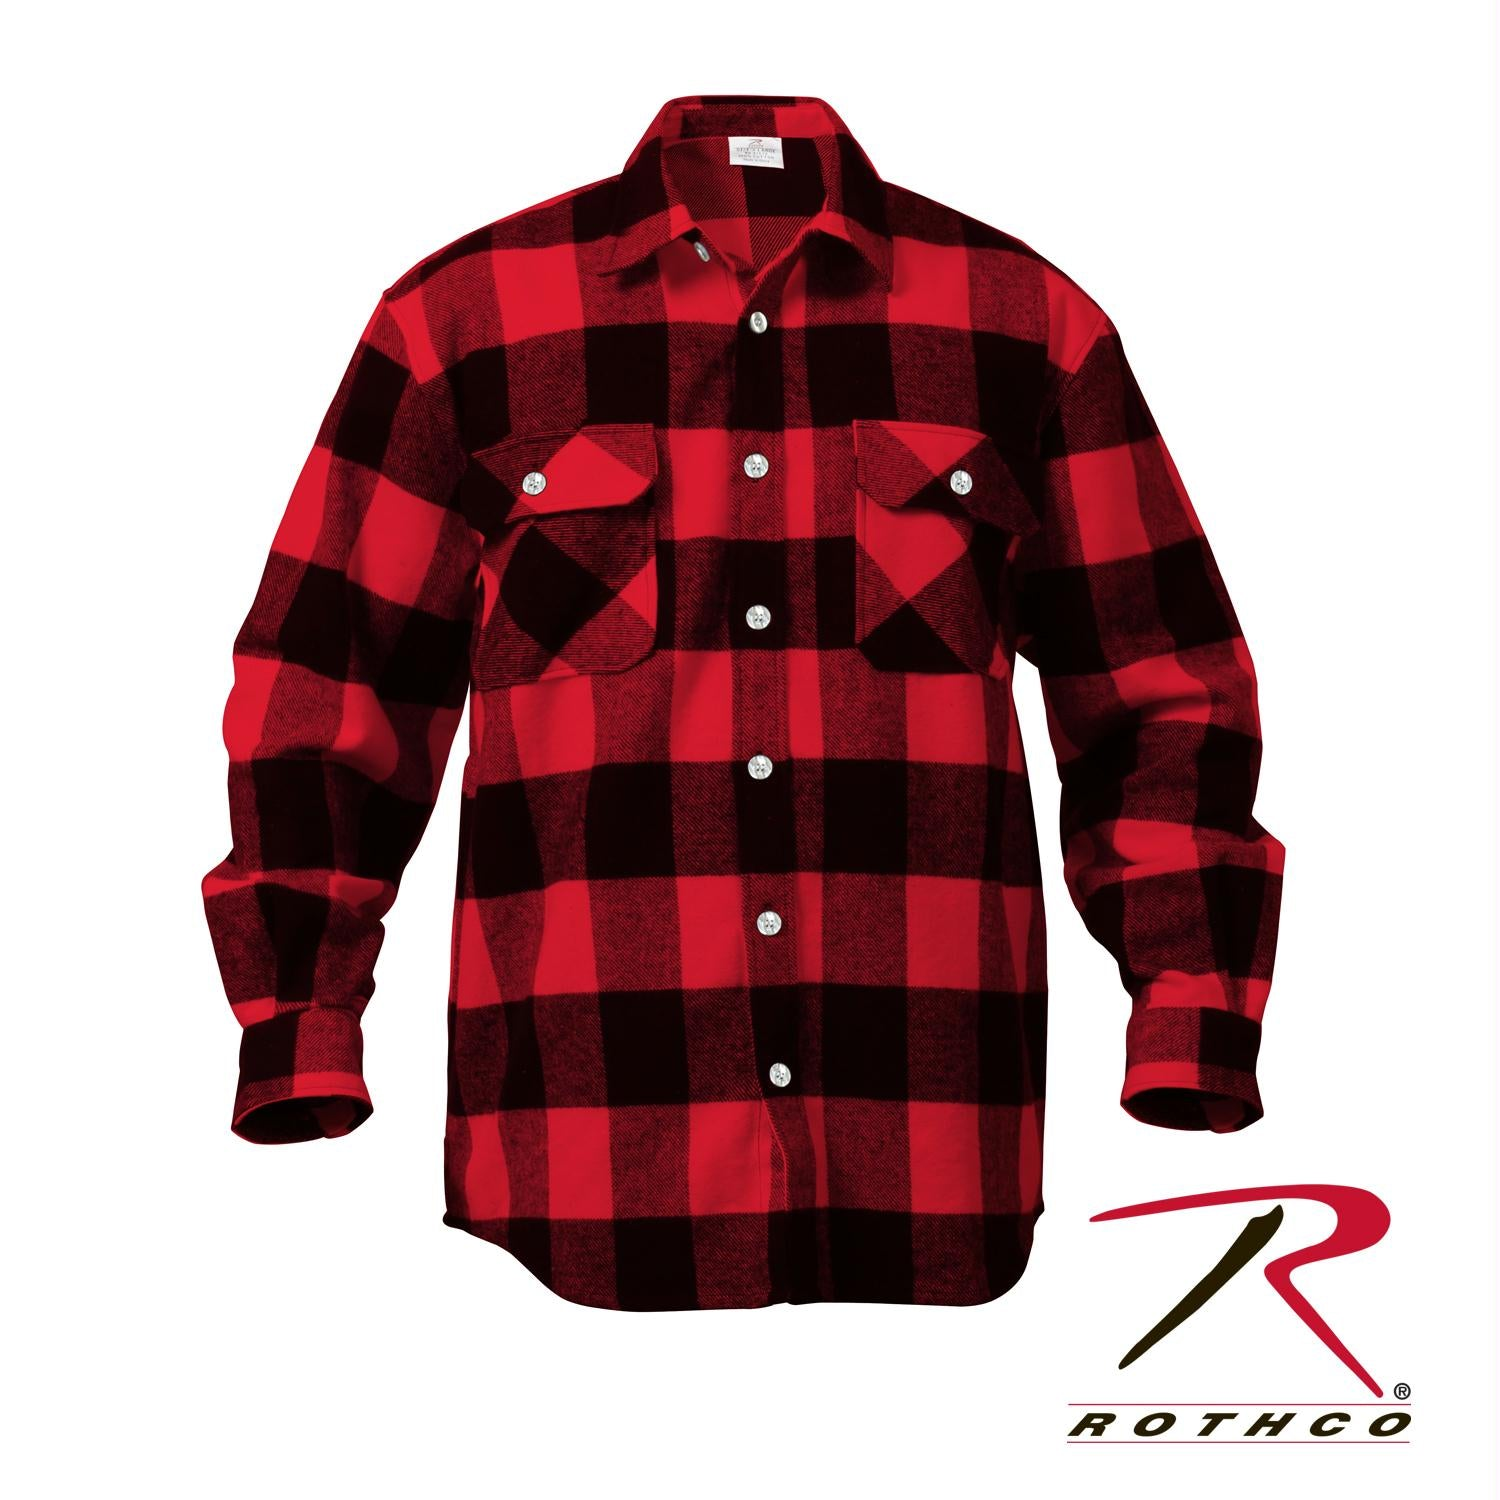 Rothco Extra Heavyweight Buffalo Plaid Flannel Shirts - Red Plaid / 5XL